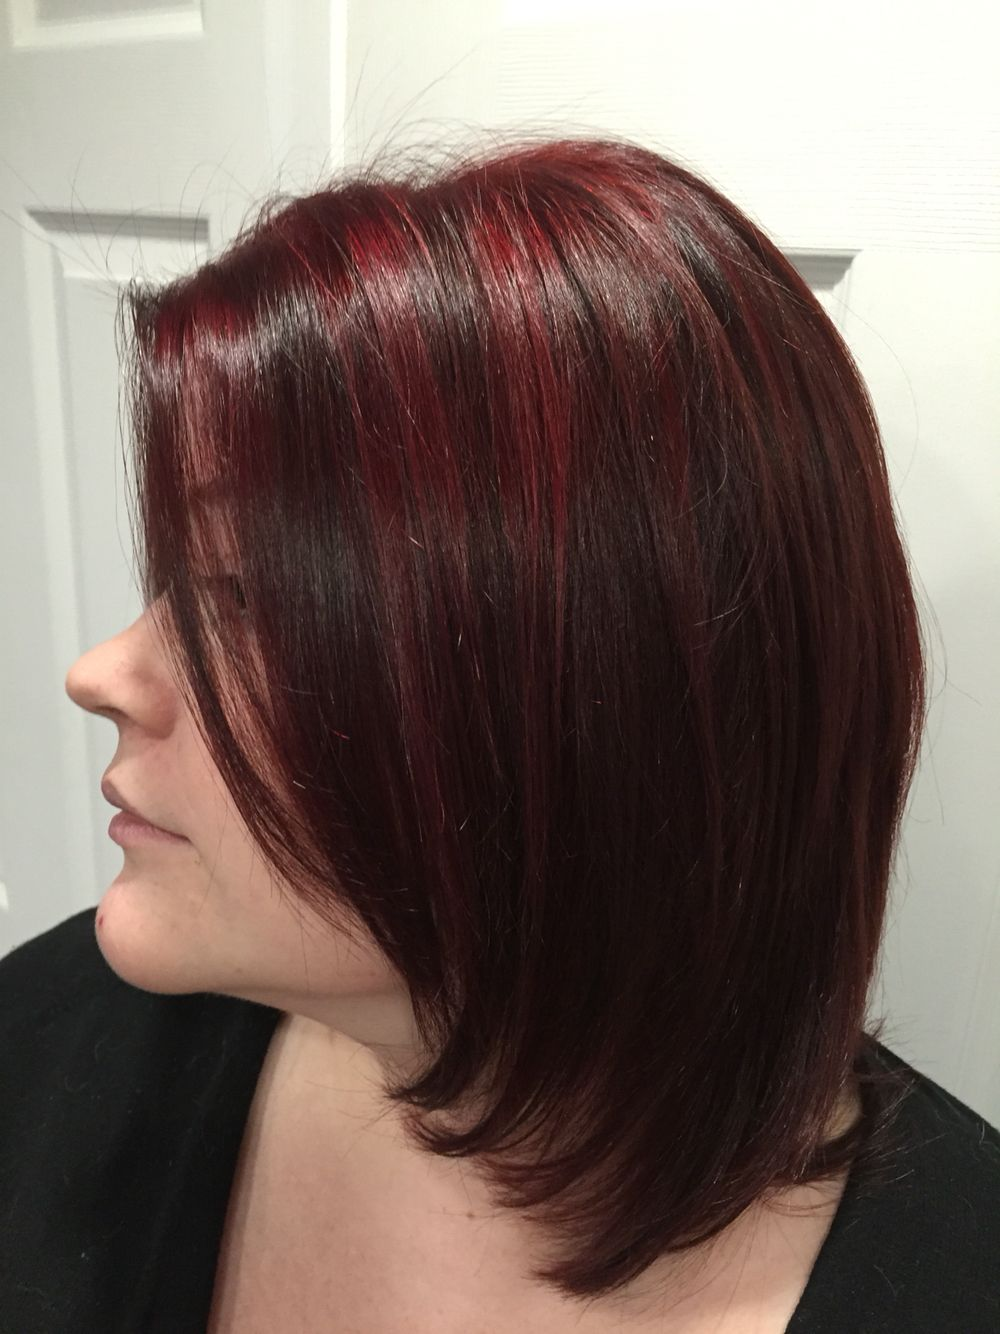 Long layered bob with cherry red highlights on natural dark brown